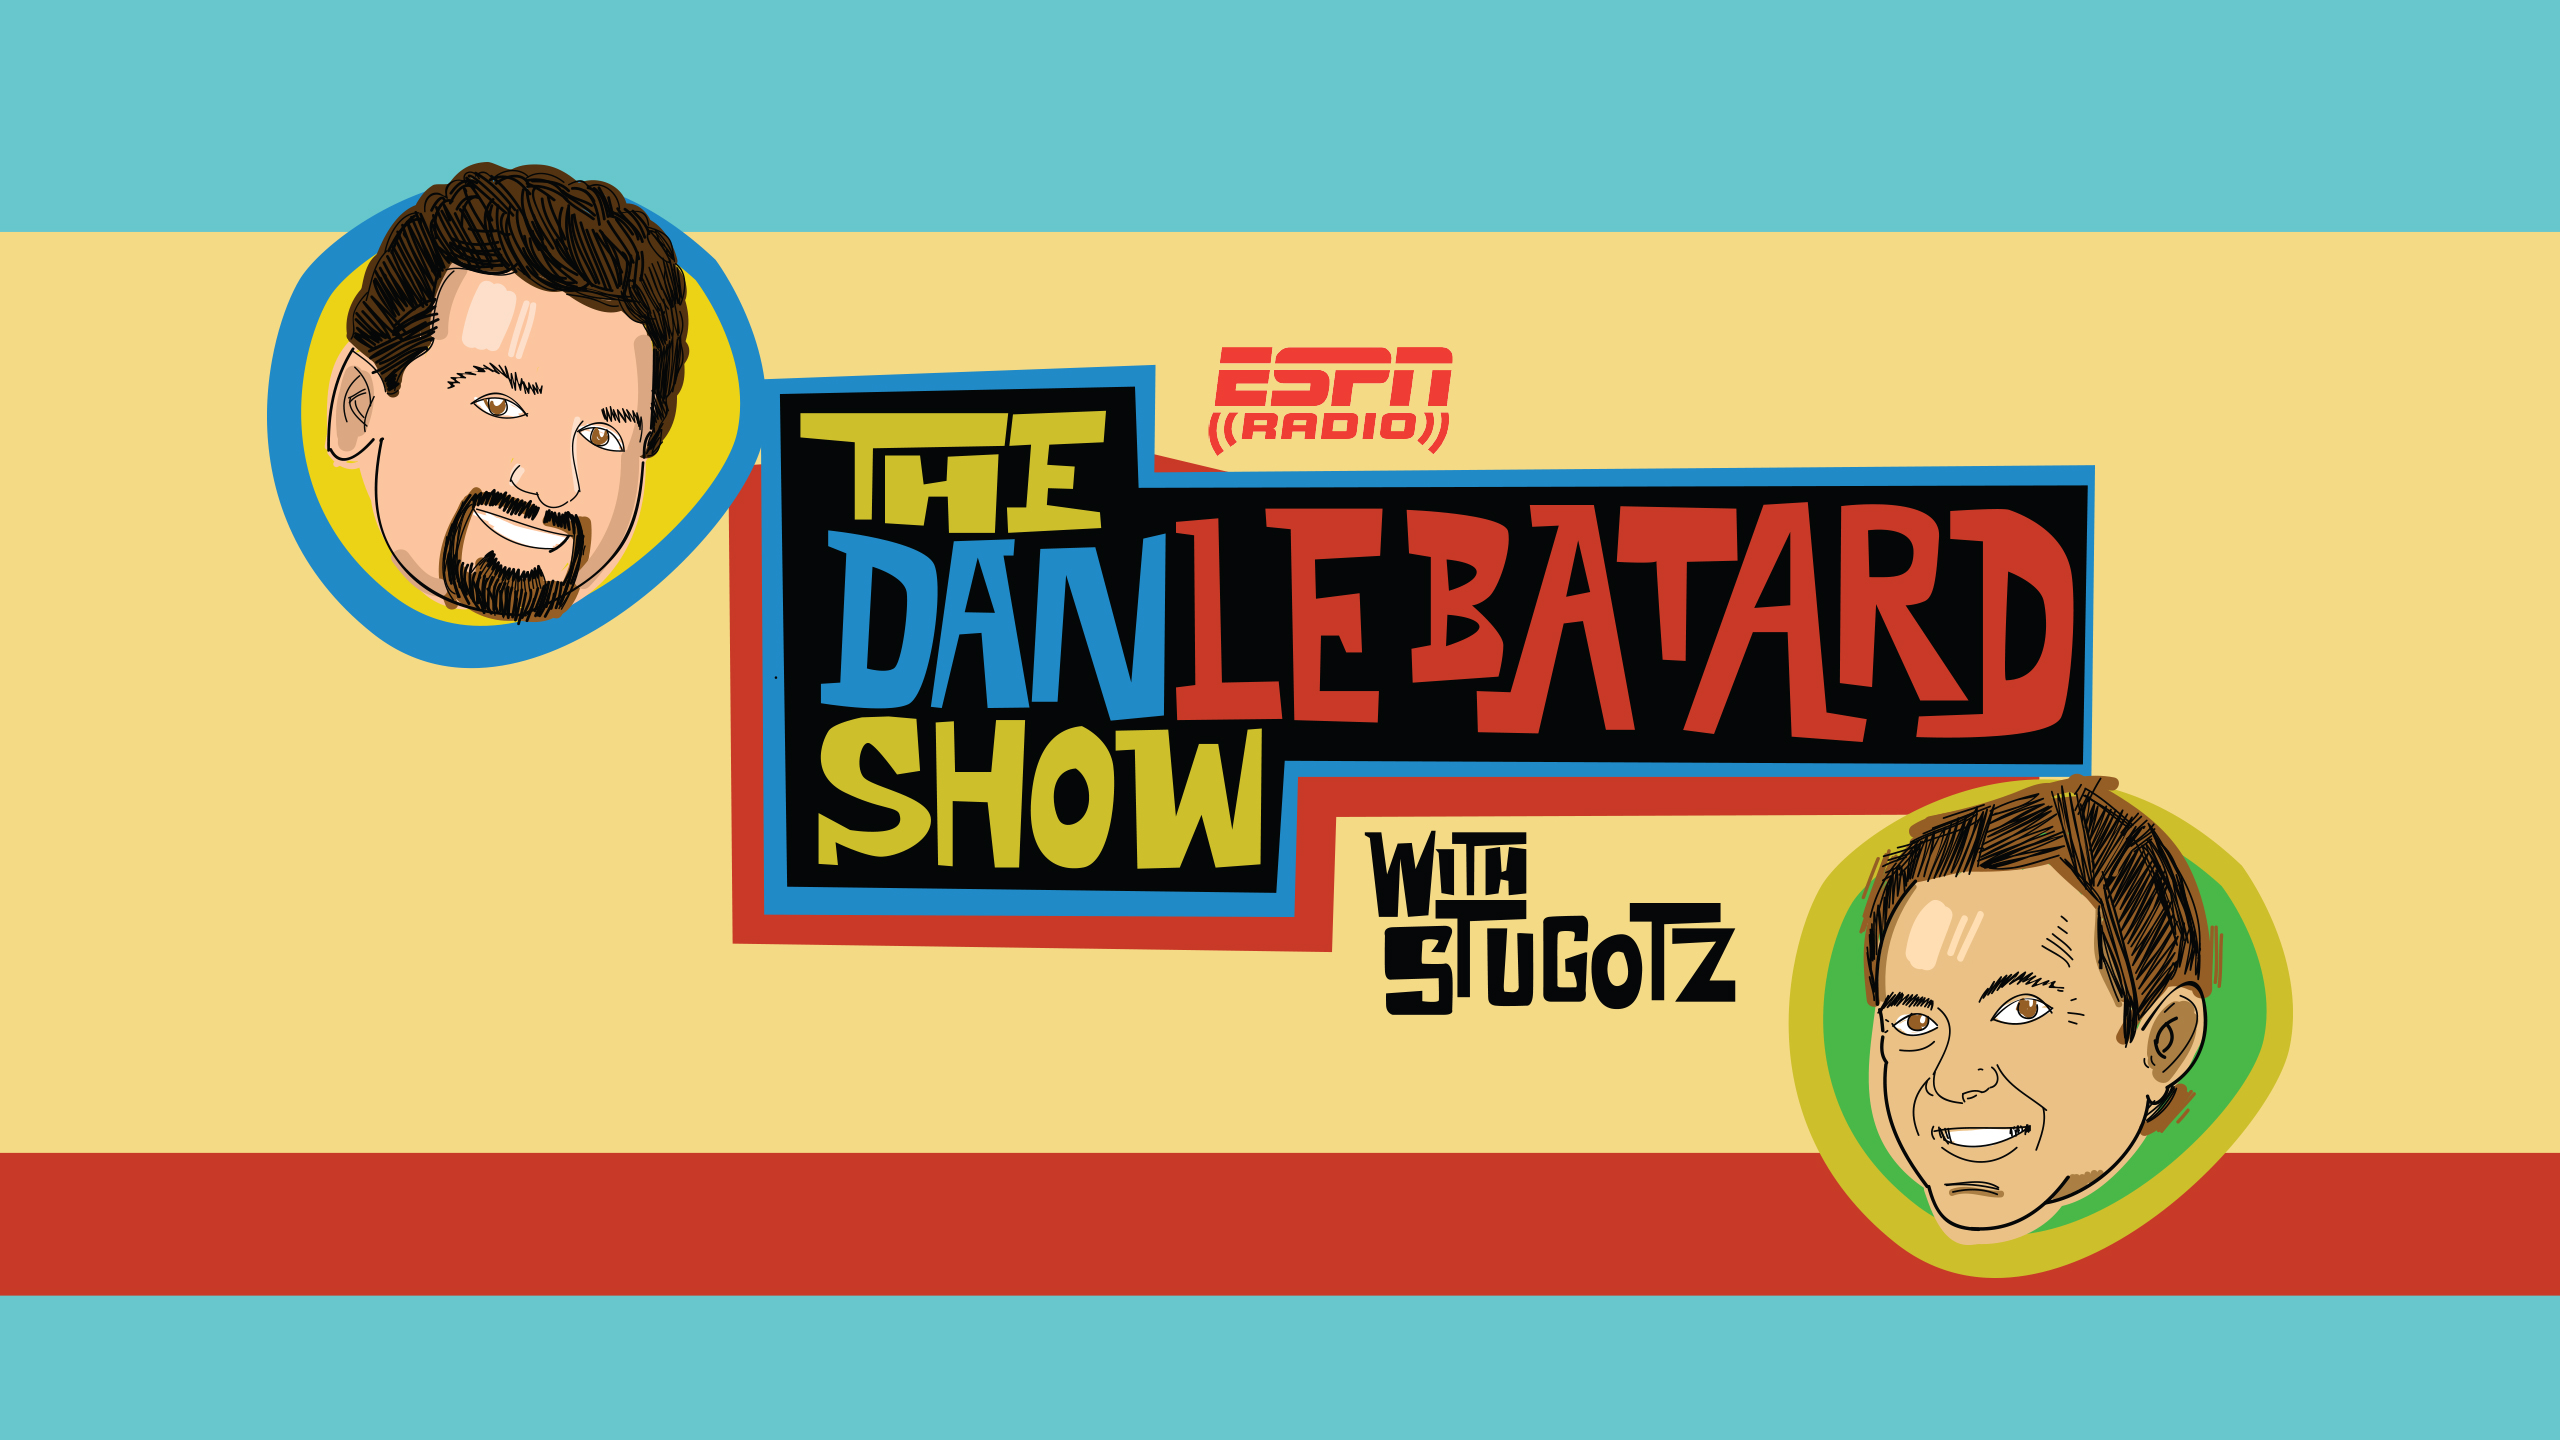 Wed, 4/17 - The Dan Le Batard Show with Stugotz Presented by Progressive